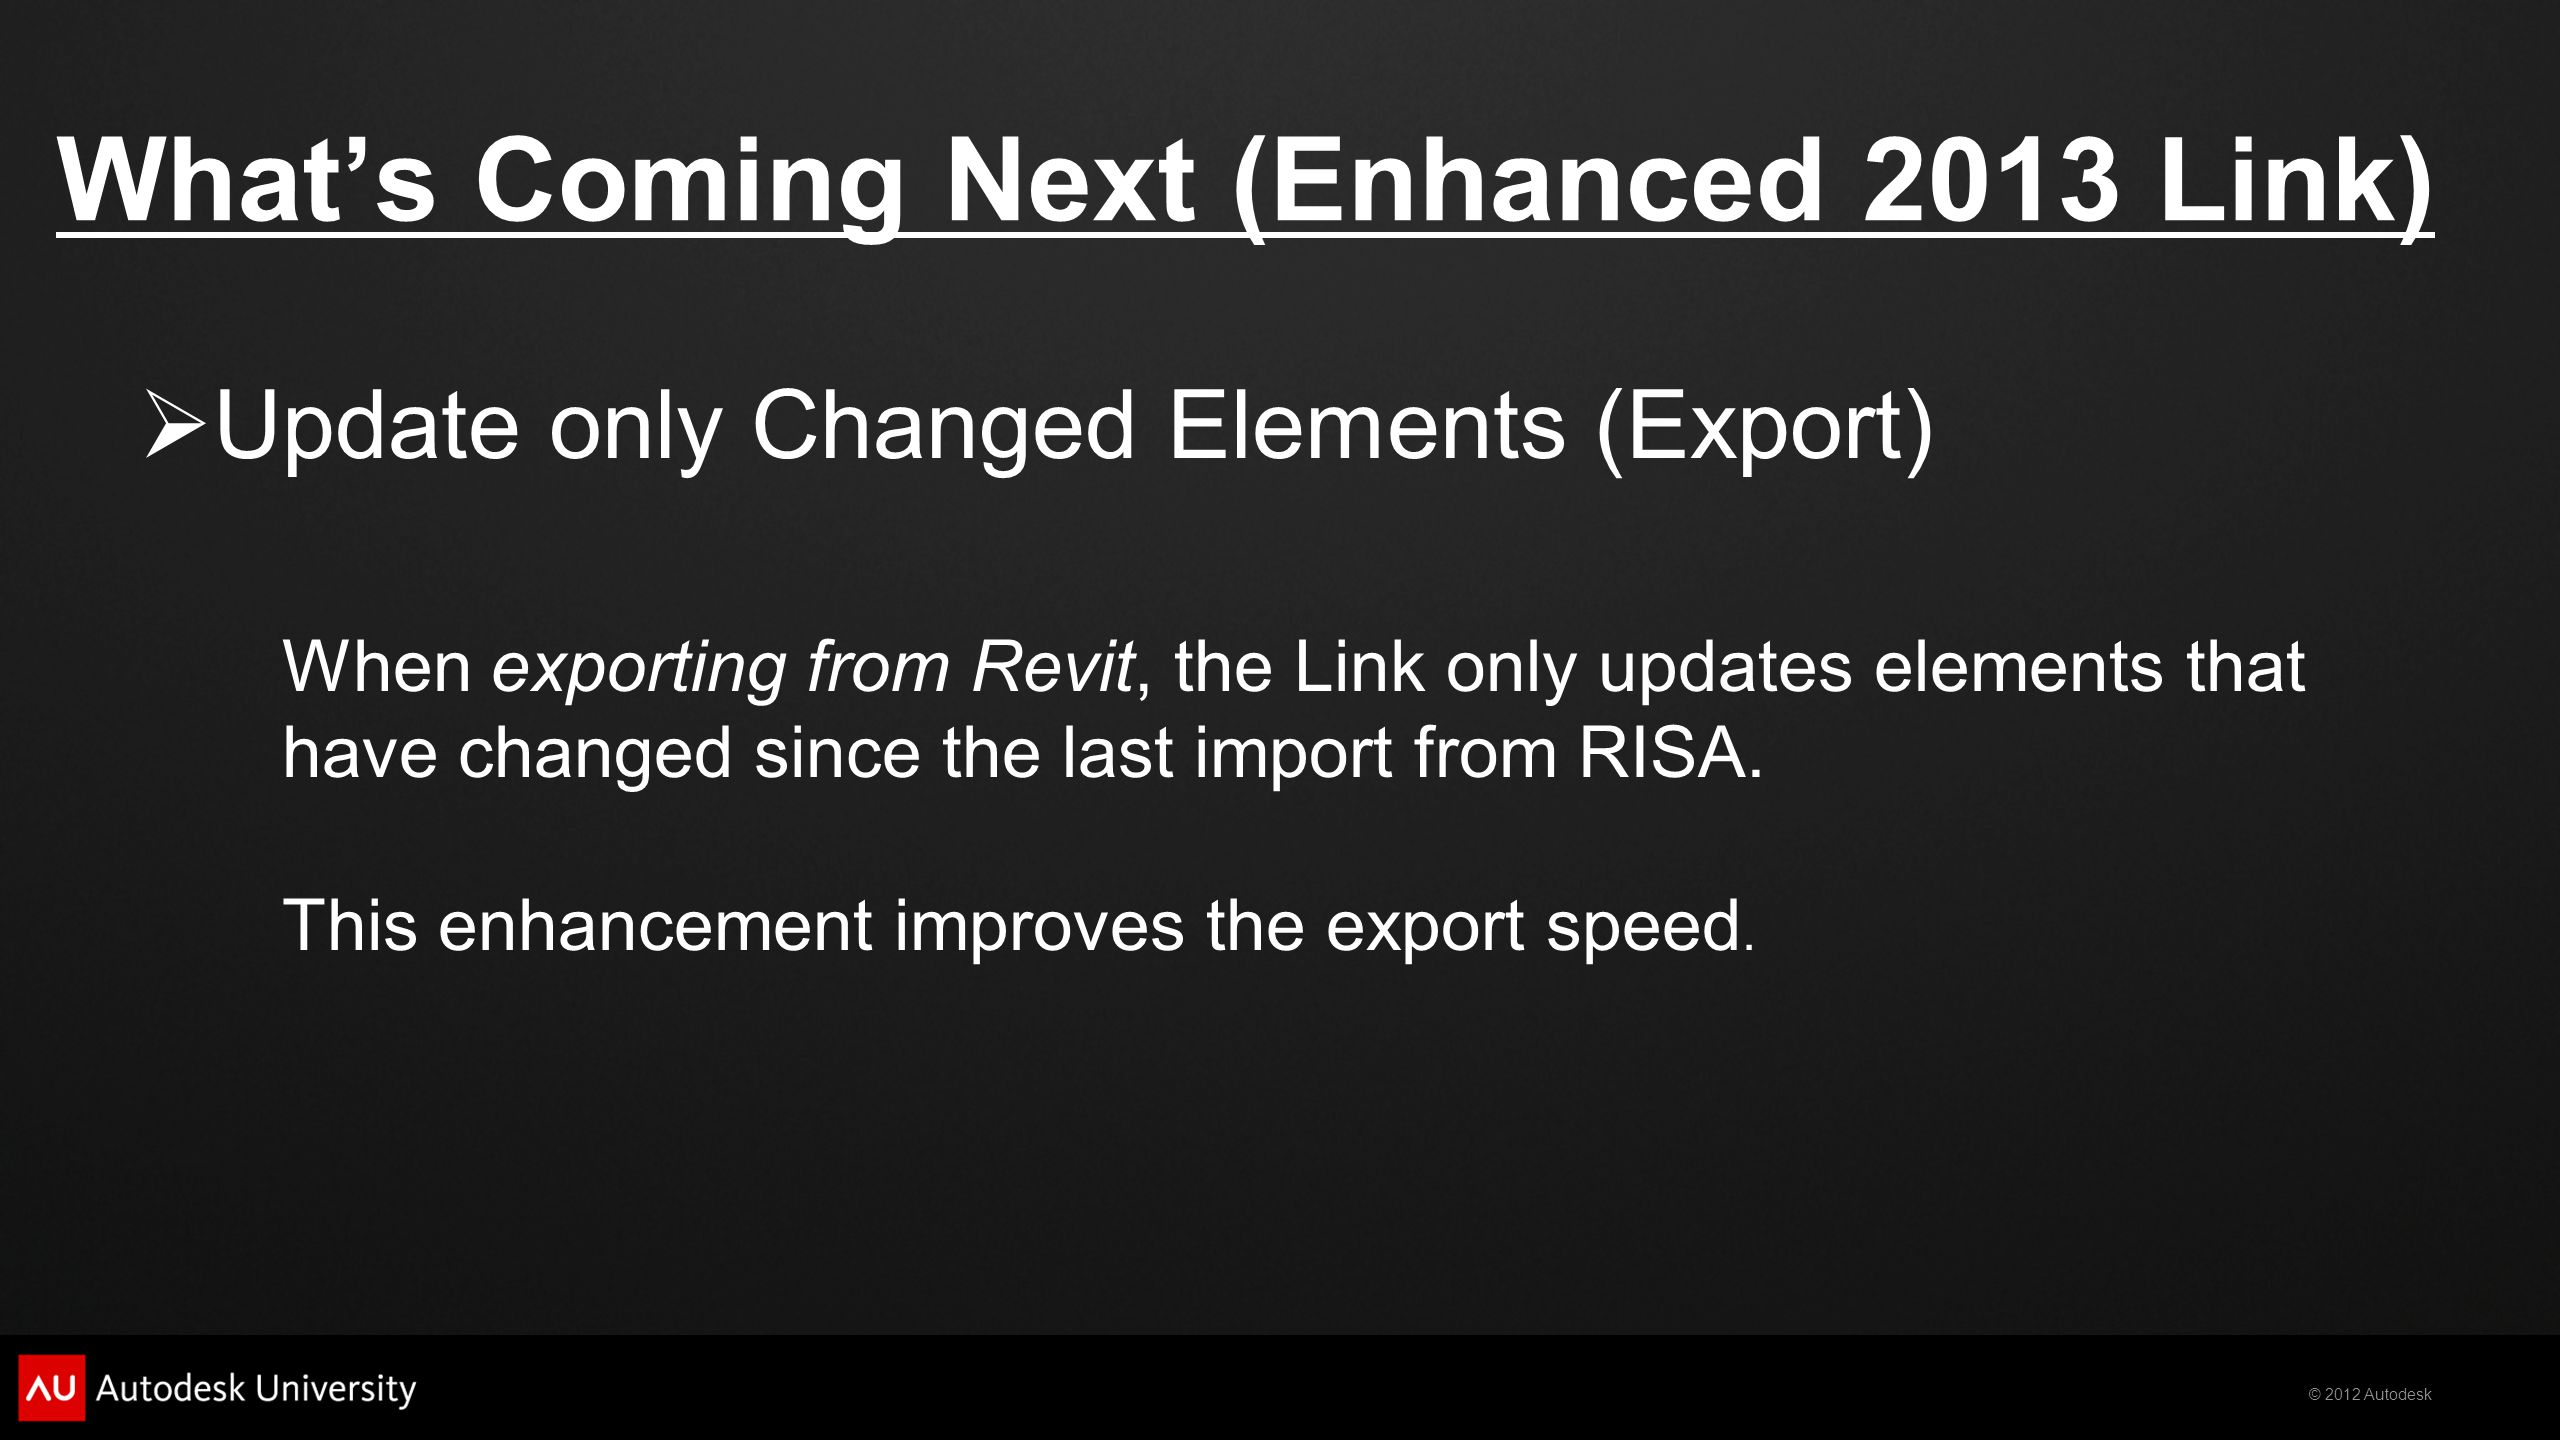 © 2012 Autodesk What's Coming Next (Enhanced 2013 Link)  Update only Changed Elements (Export) When exporting from Revit, the Link only updates elements that have changed since the last import from RISA.